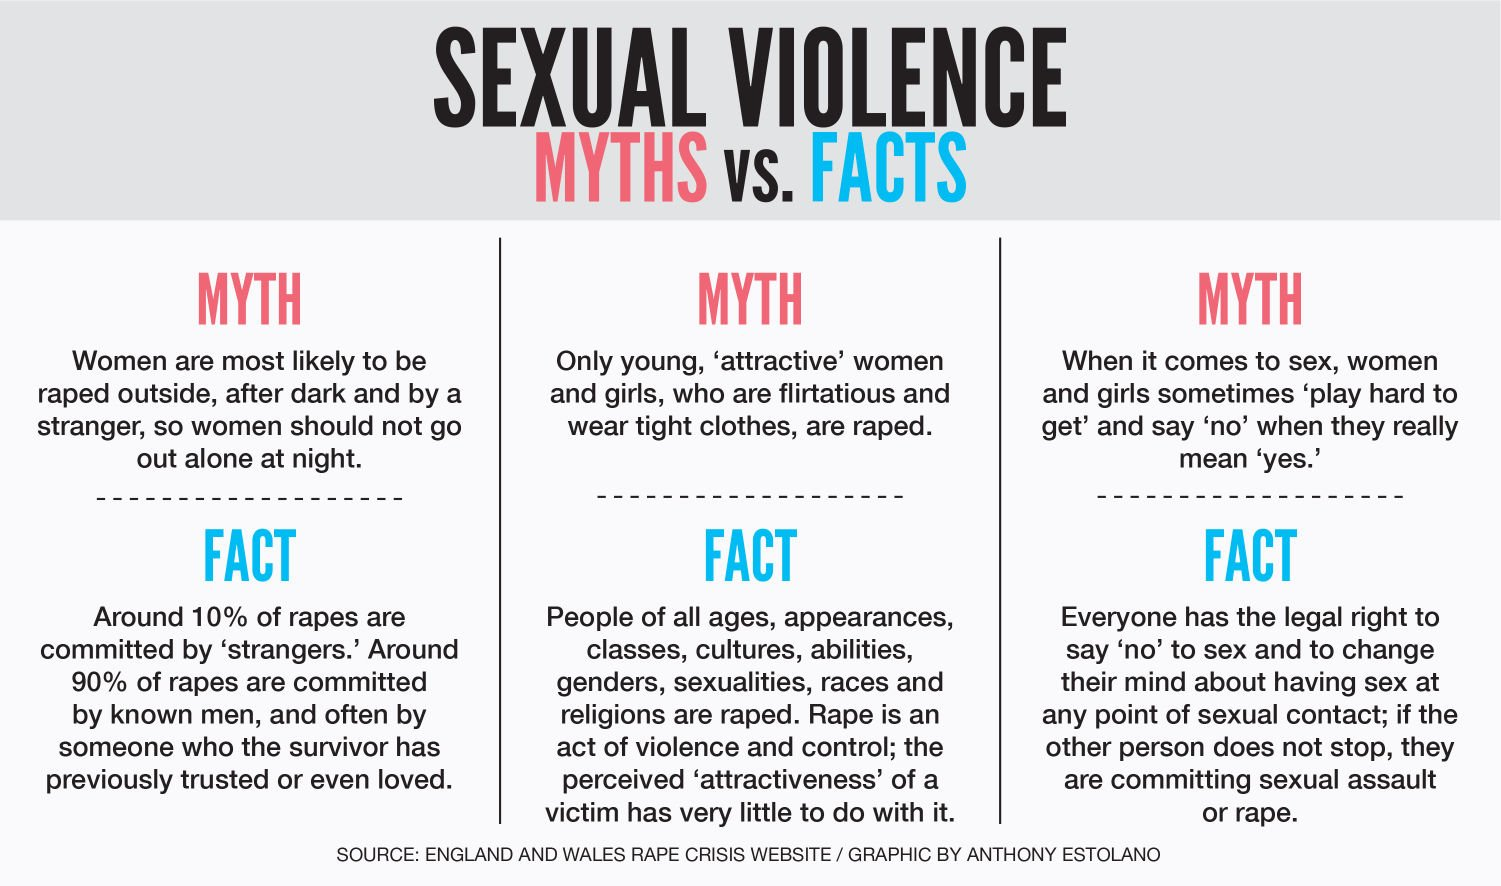 Myths and facts on sex